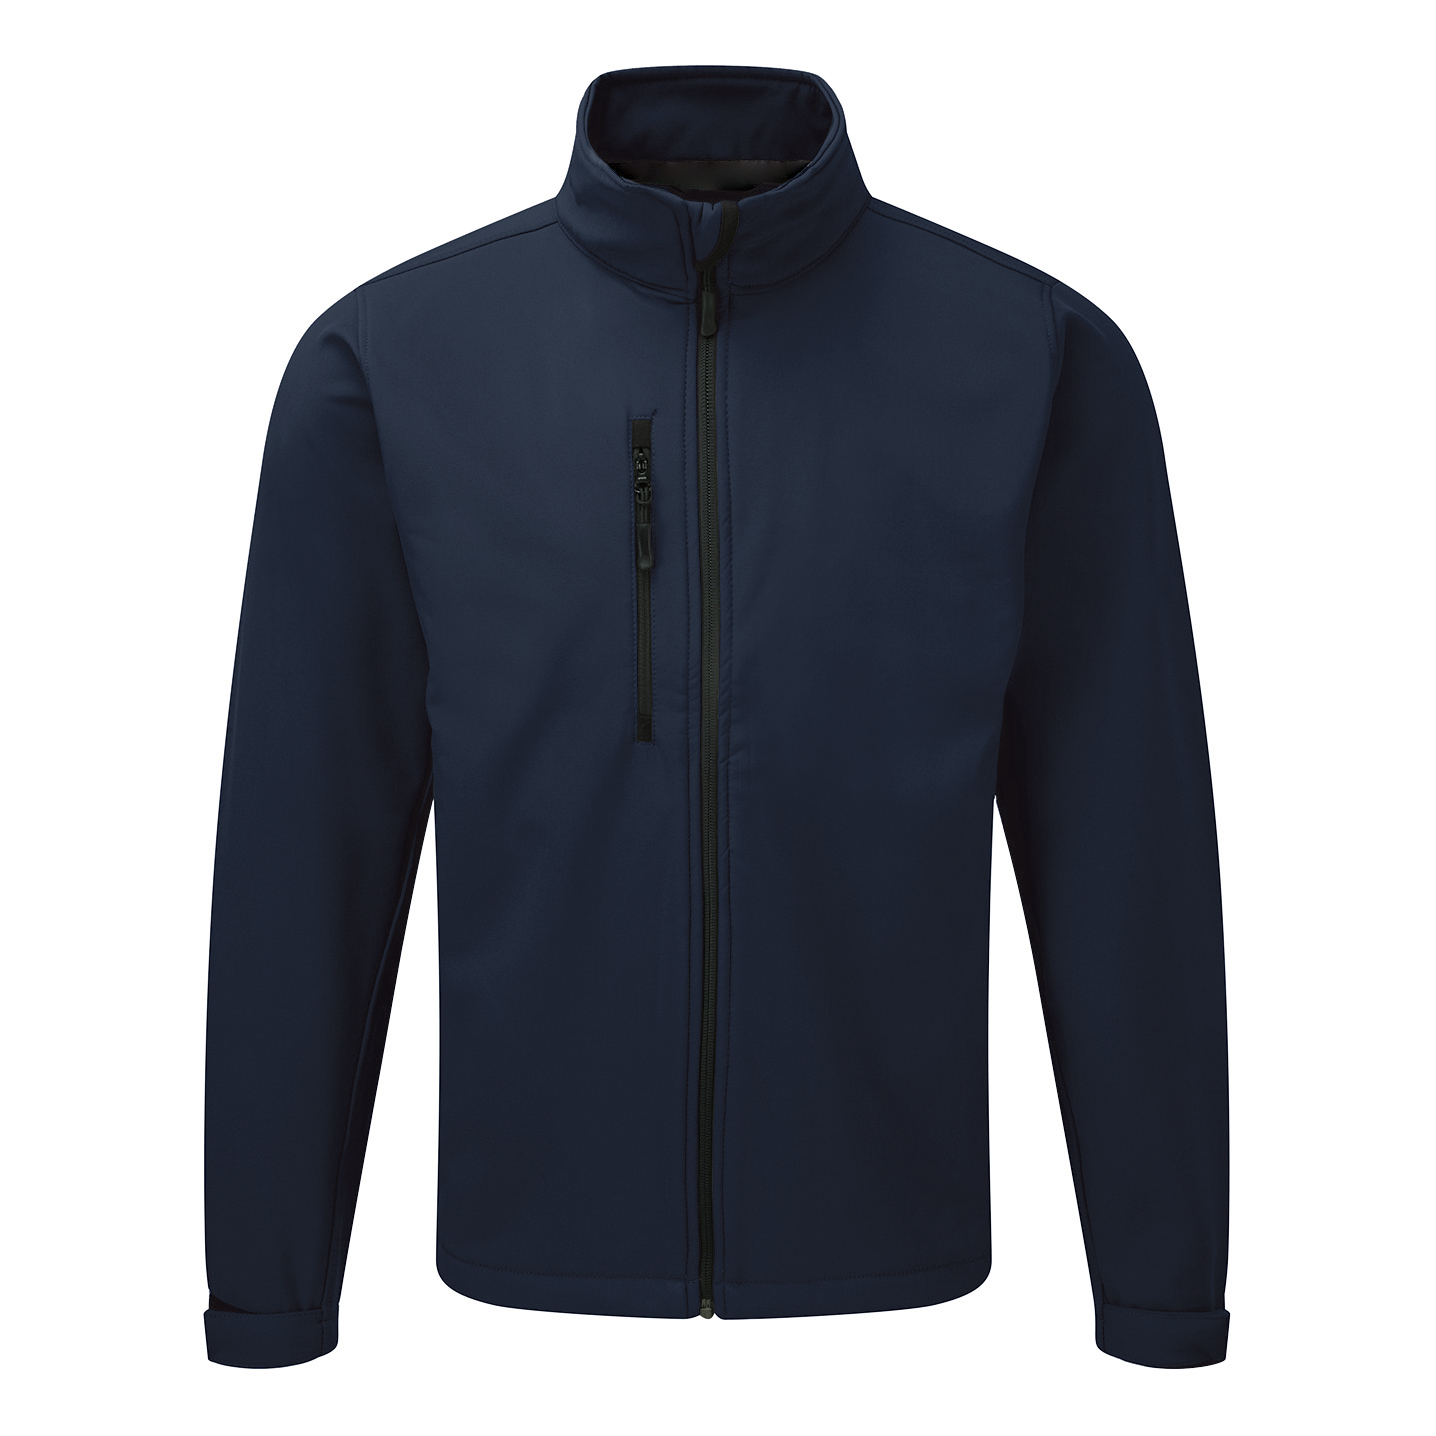 Jacket Soft Shell Water Resistant Breathable 320gsm XS Navy Blue